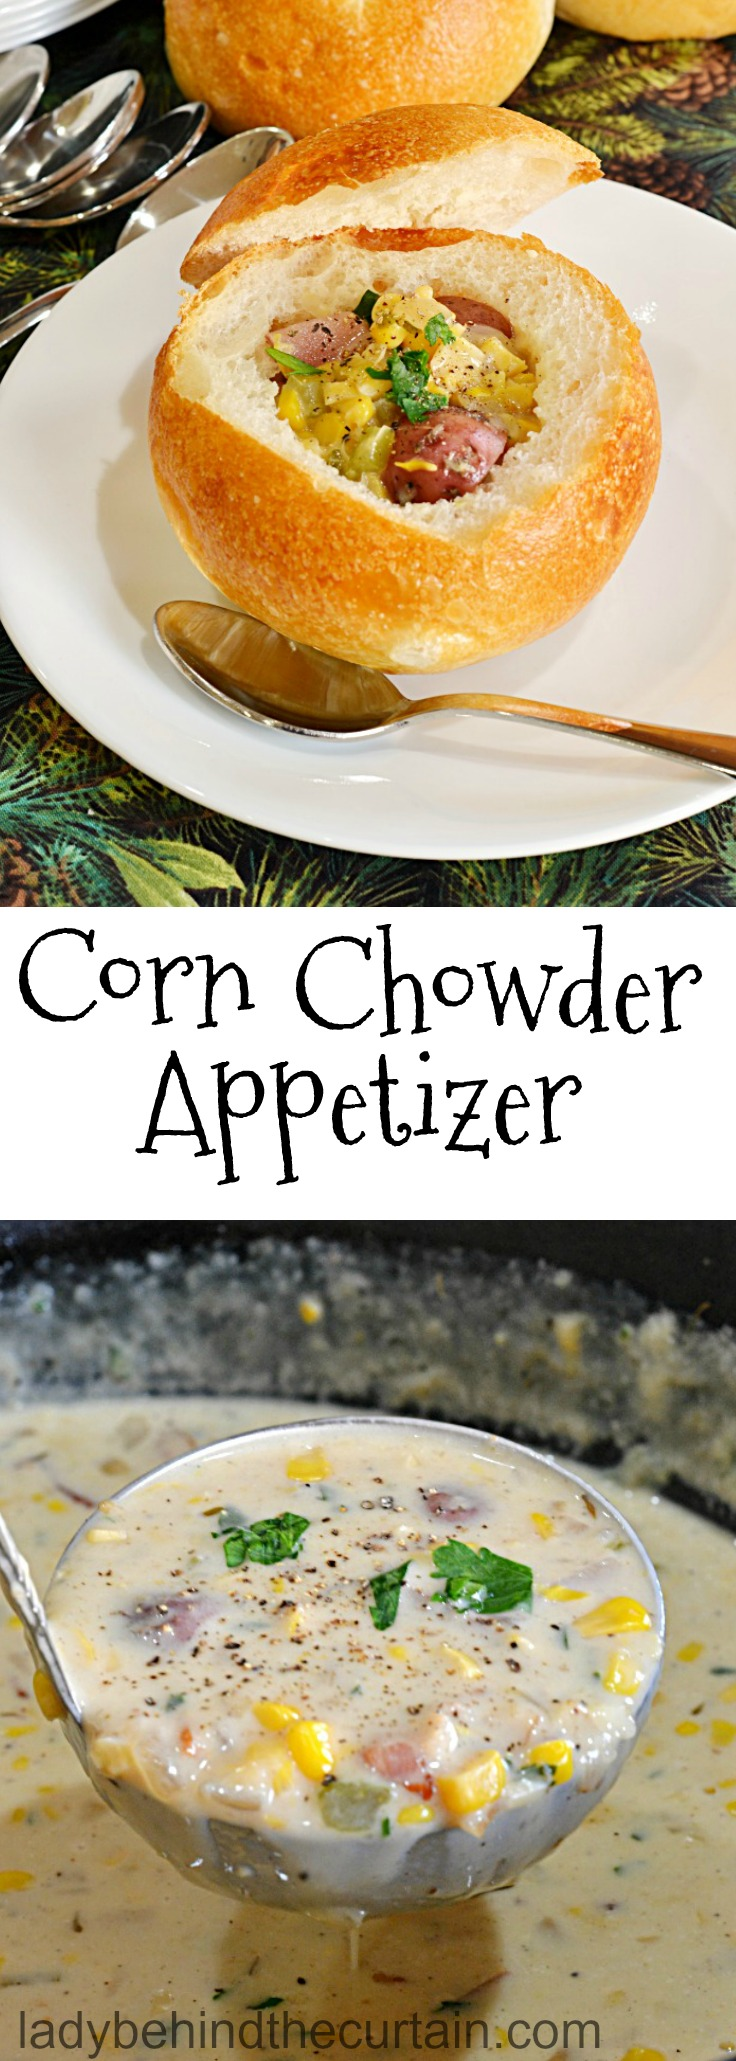 Corn Chowder Appetizer| baby shower appetizer, bridal shower appetizer, wedding reception appetizer, holiday appetizer, soup